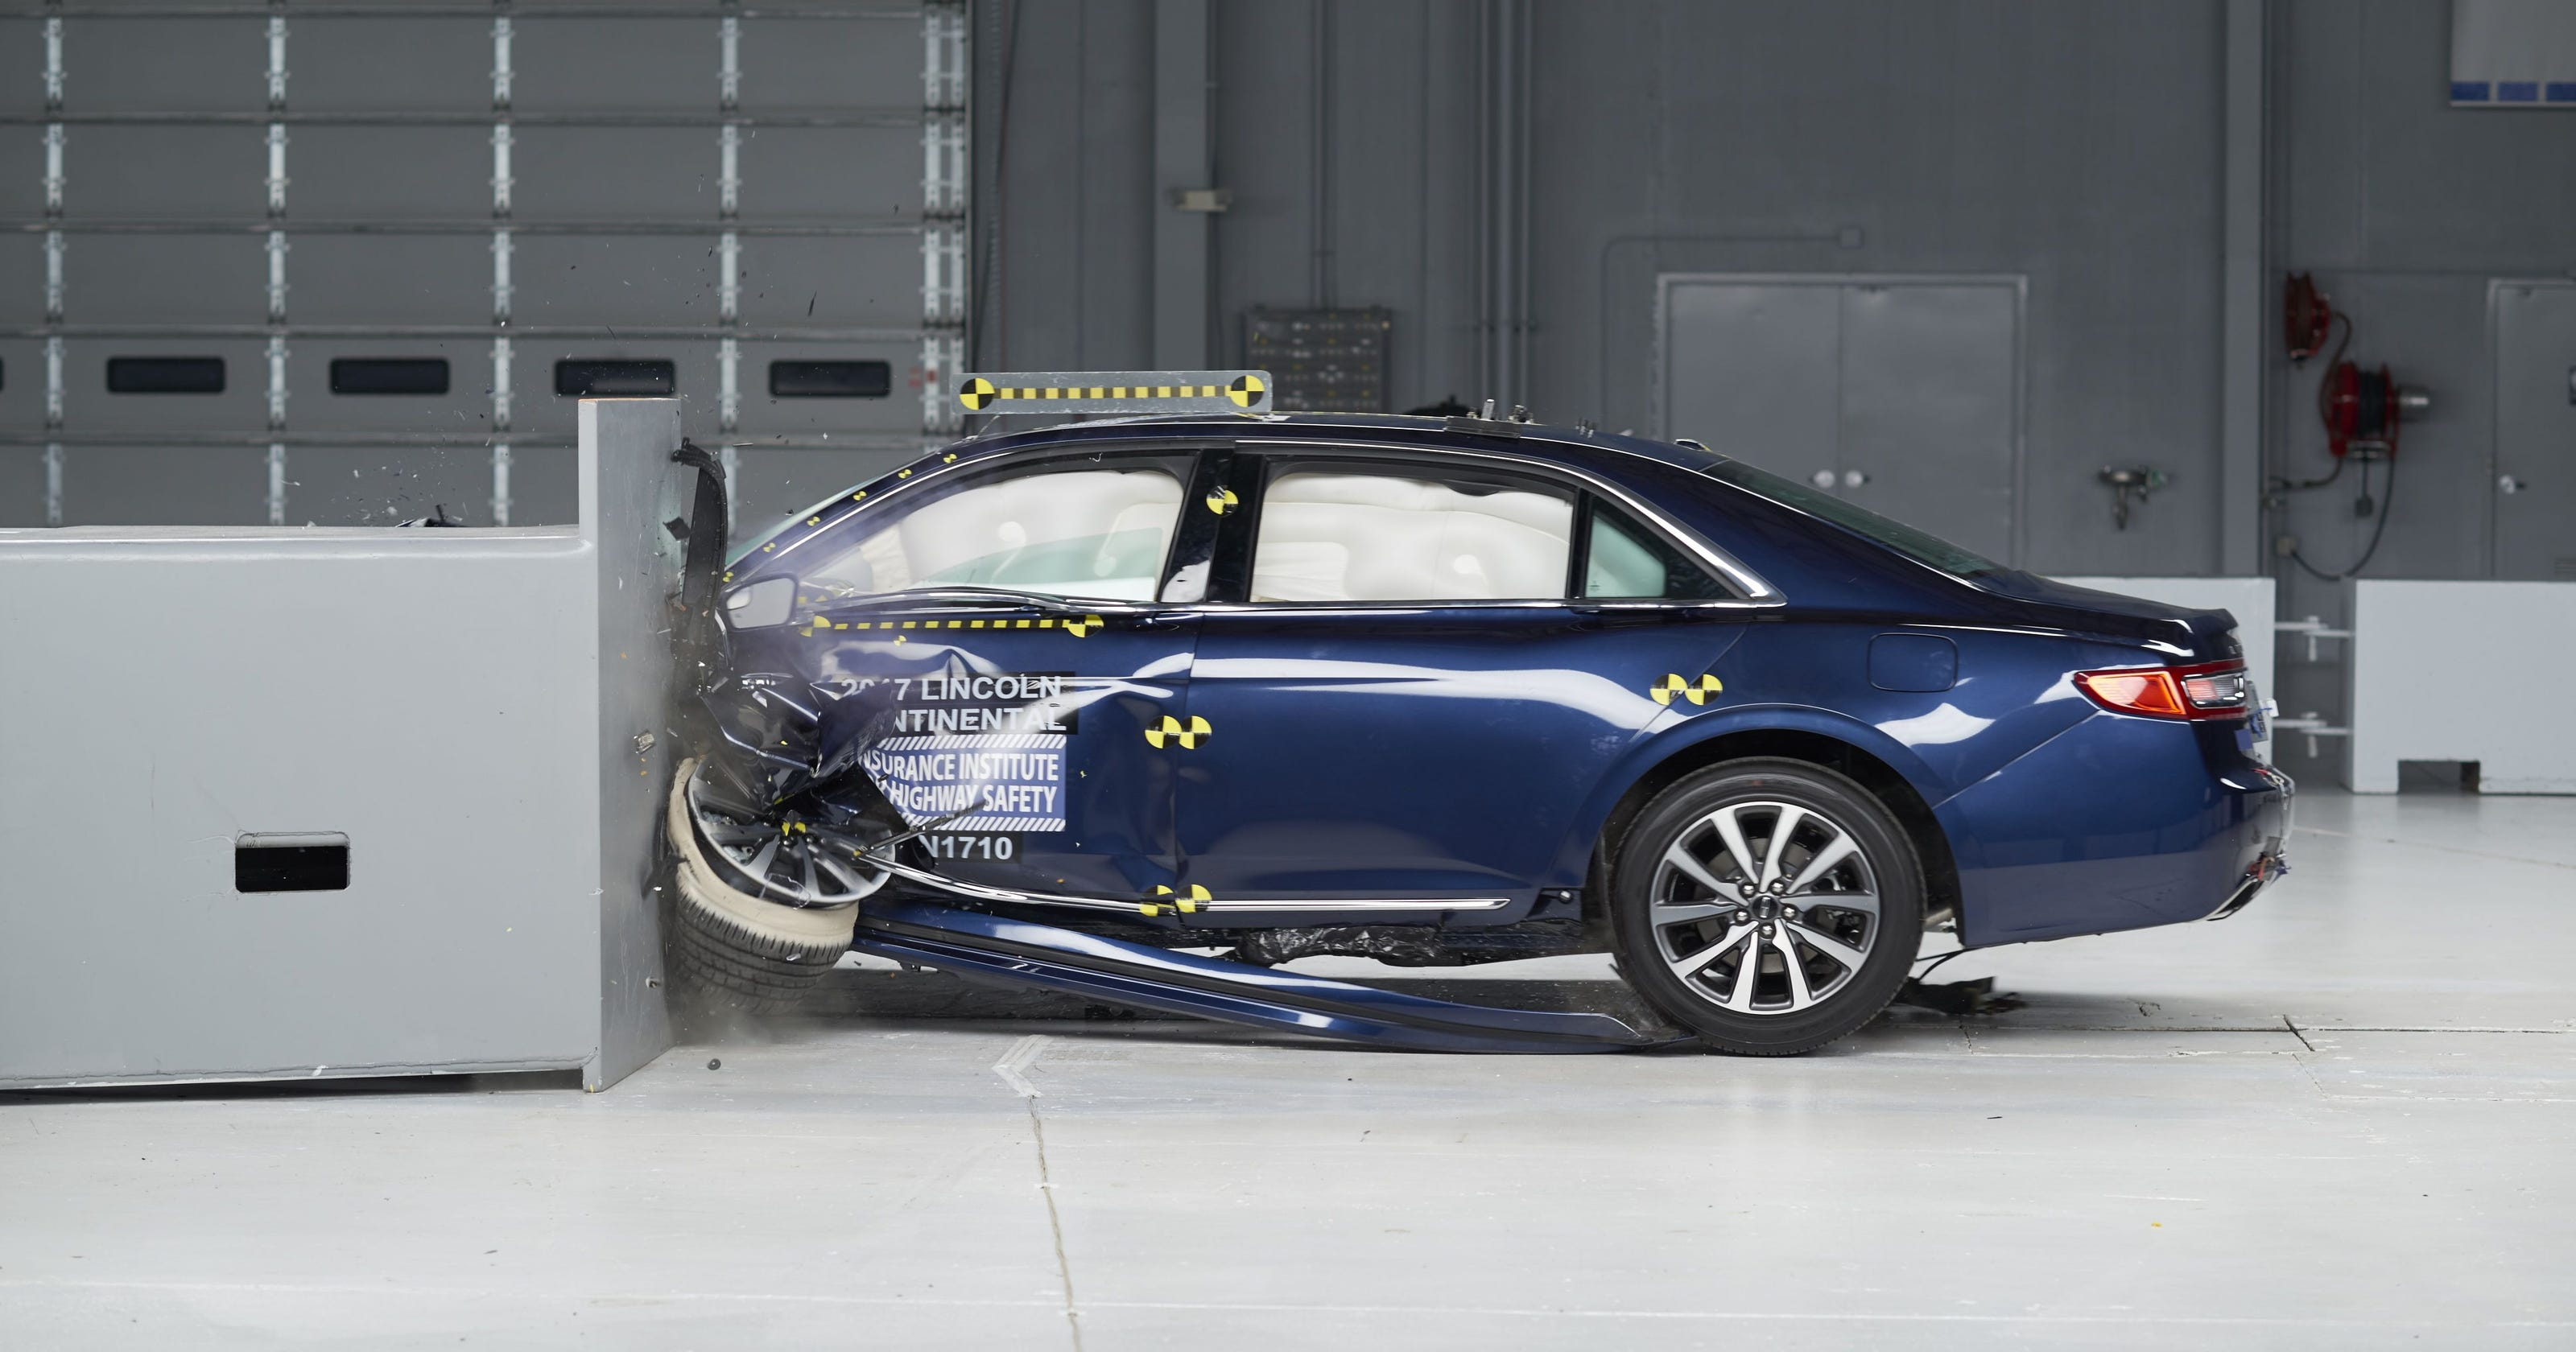 Three Cars Get Top Iihs Crash Rating Not Tesla